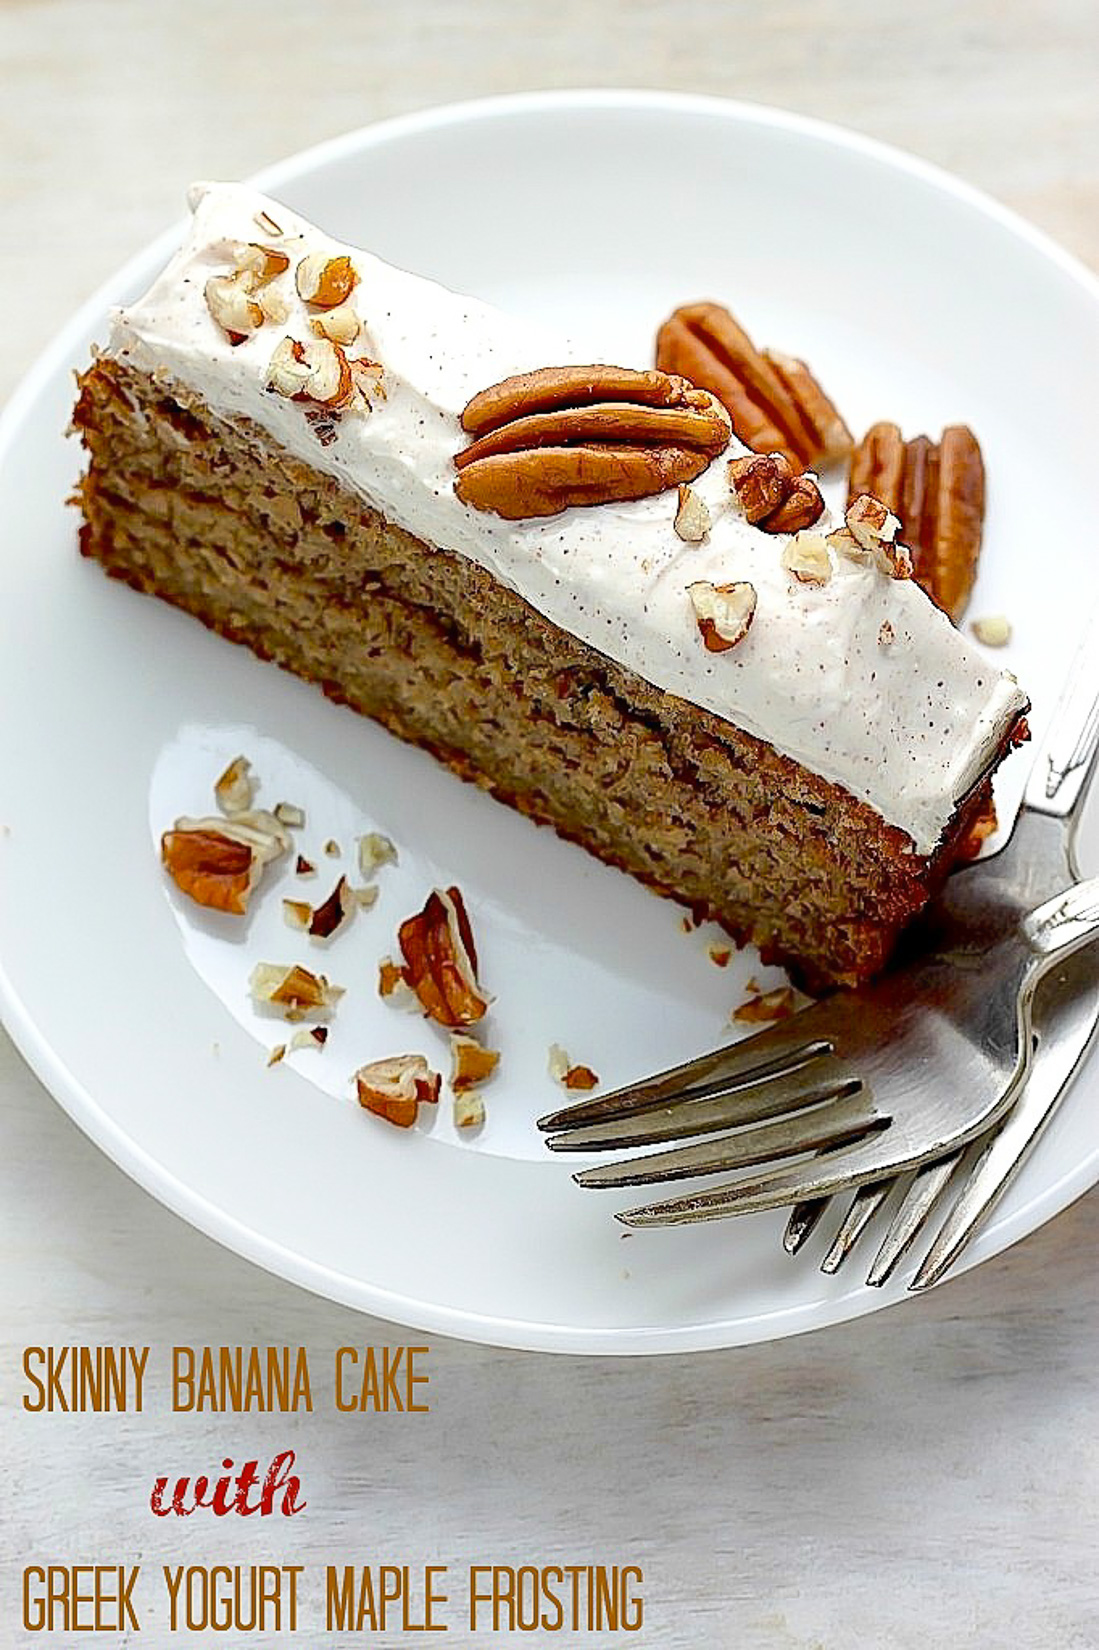 Skinny Banana Cake with Maple Frosting - Baker by Nature